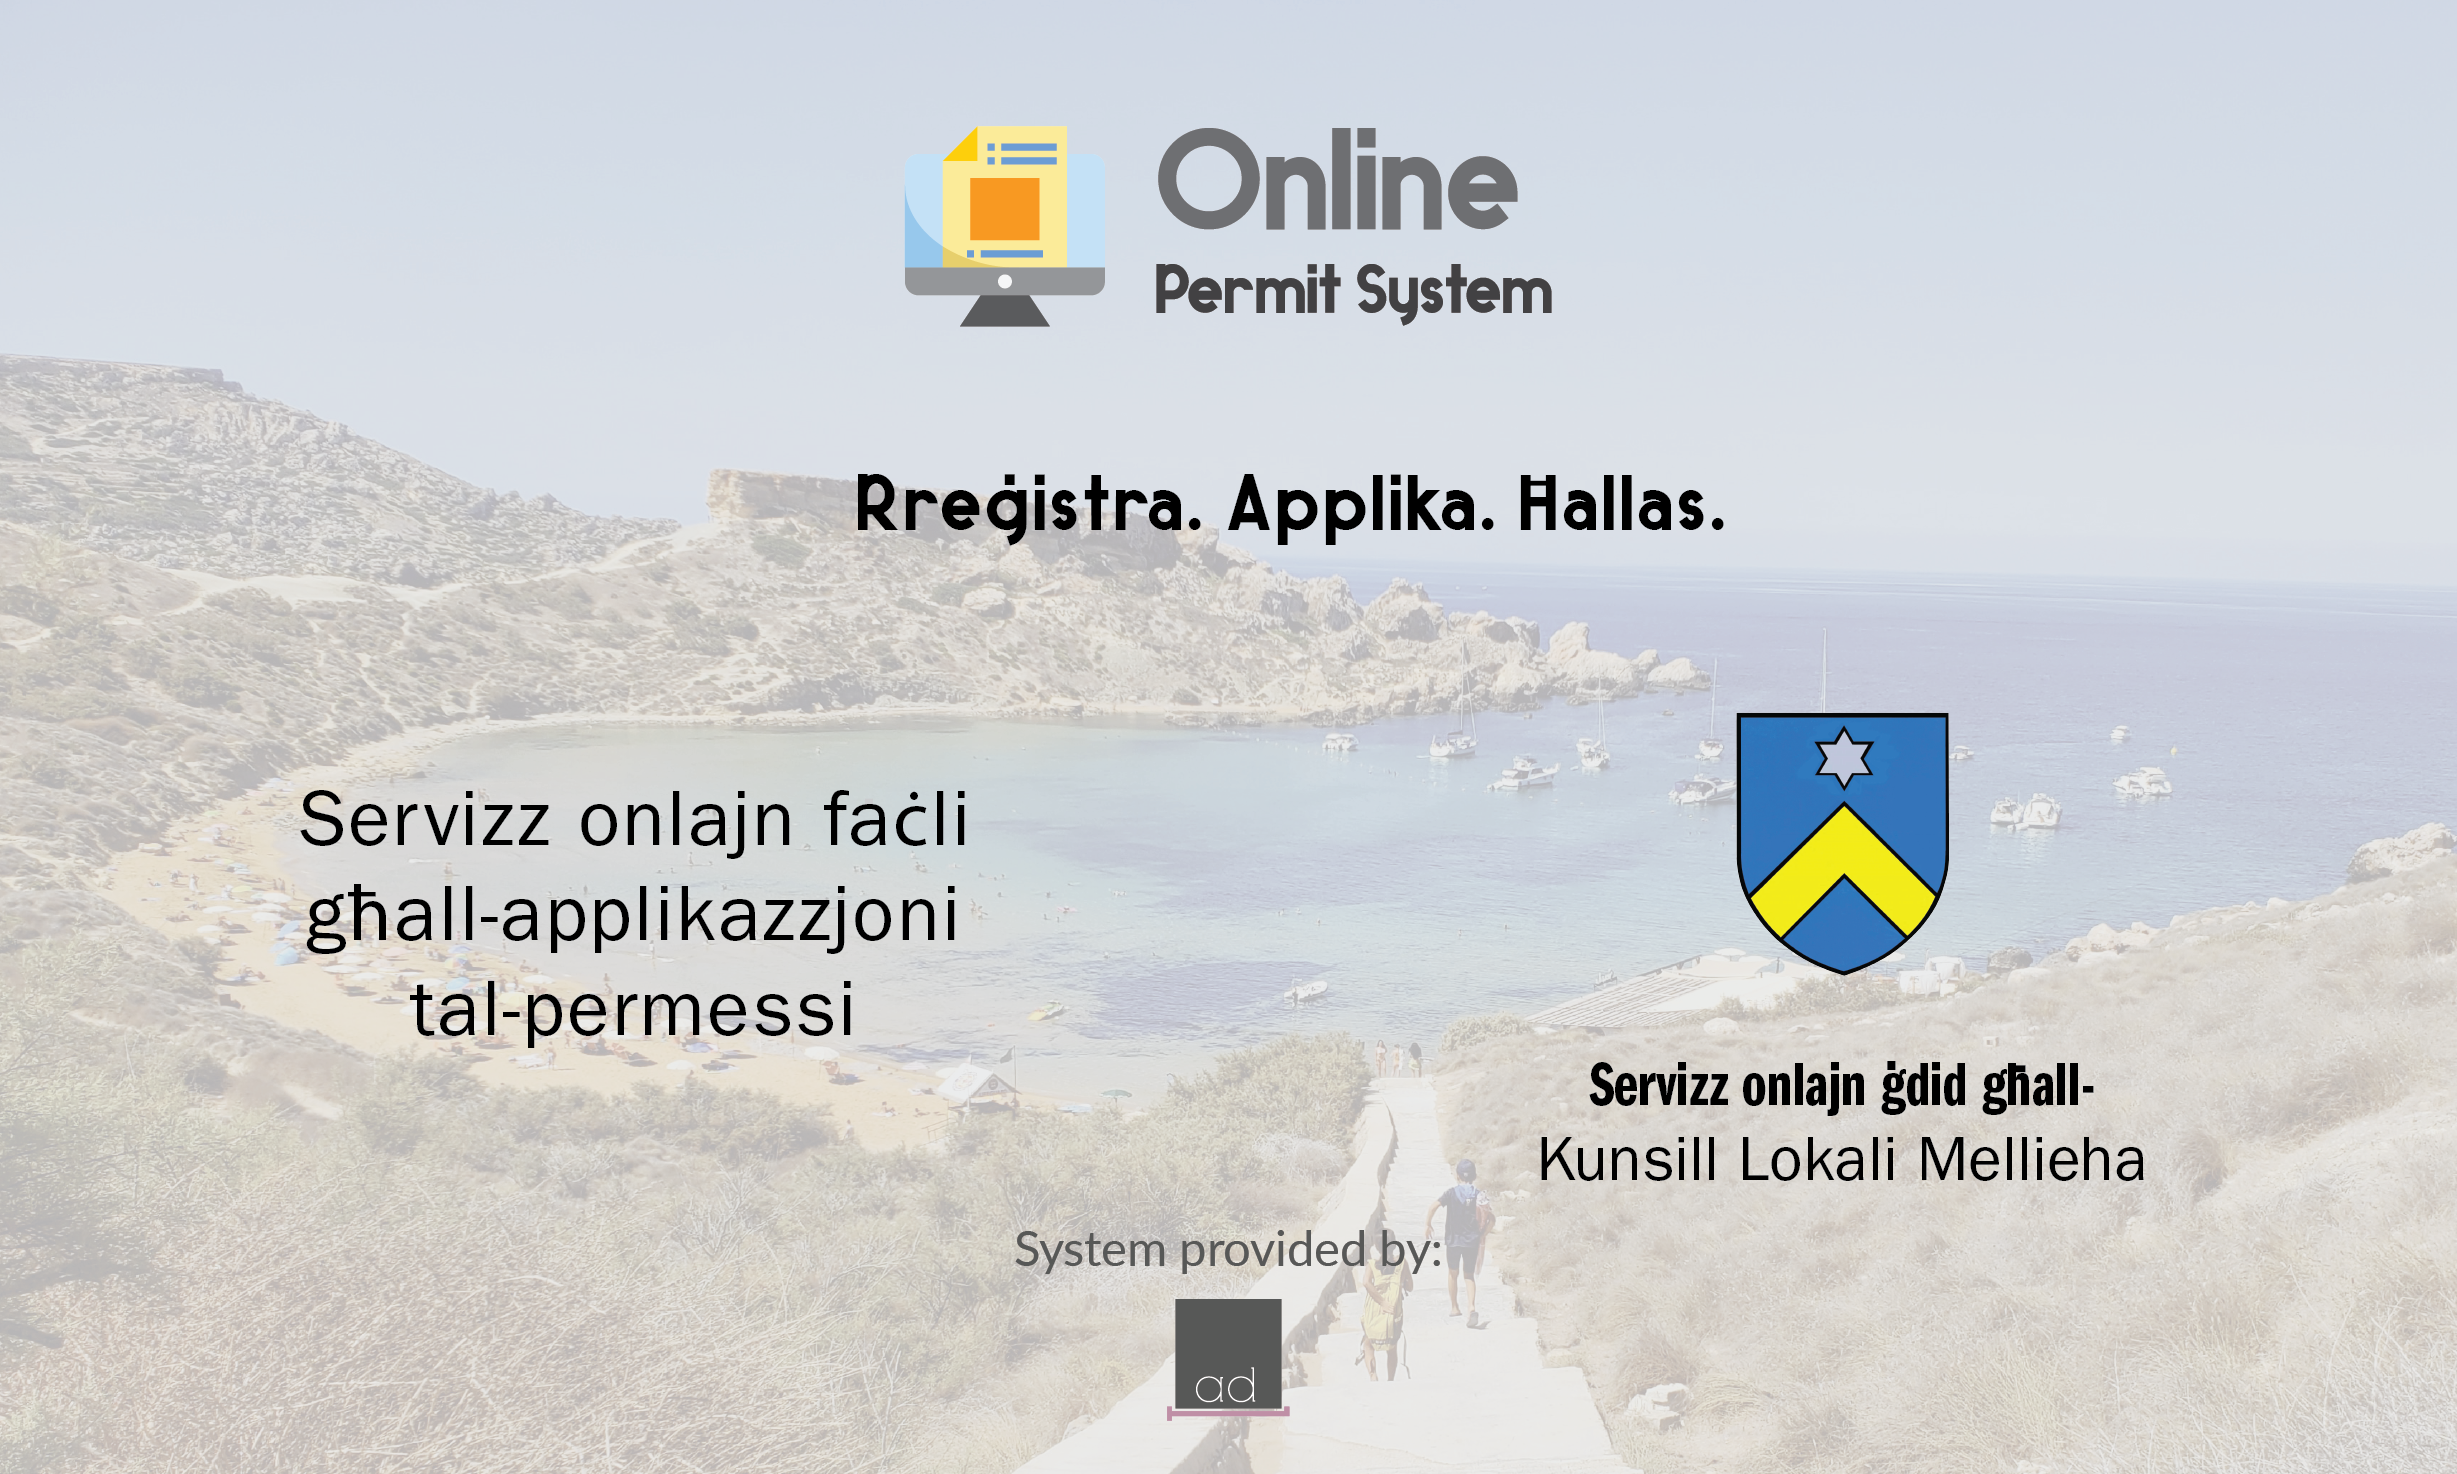 Online Permit System - Apply and Pay Online at the comfort of your home or office